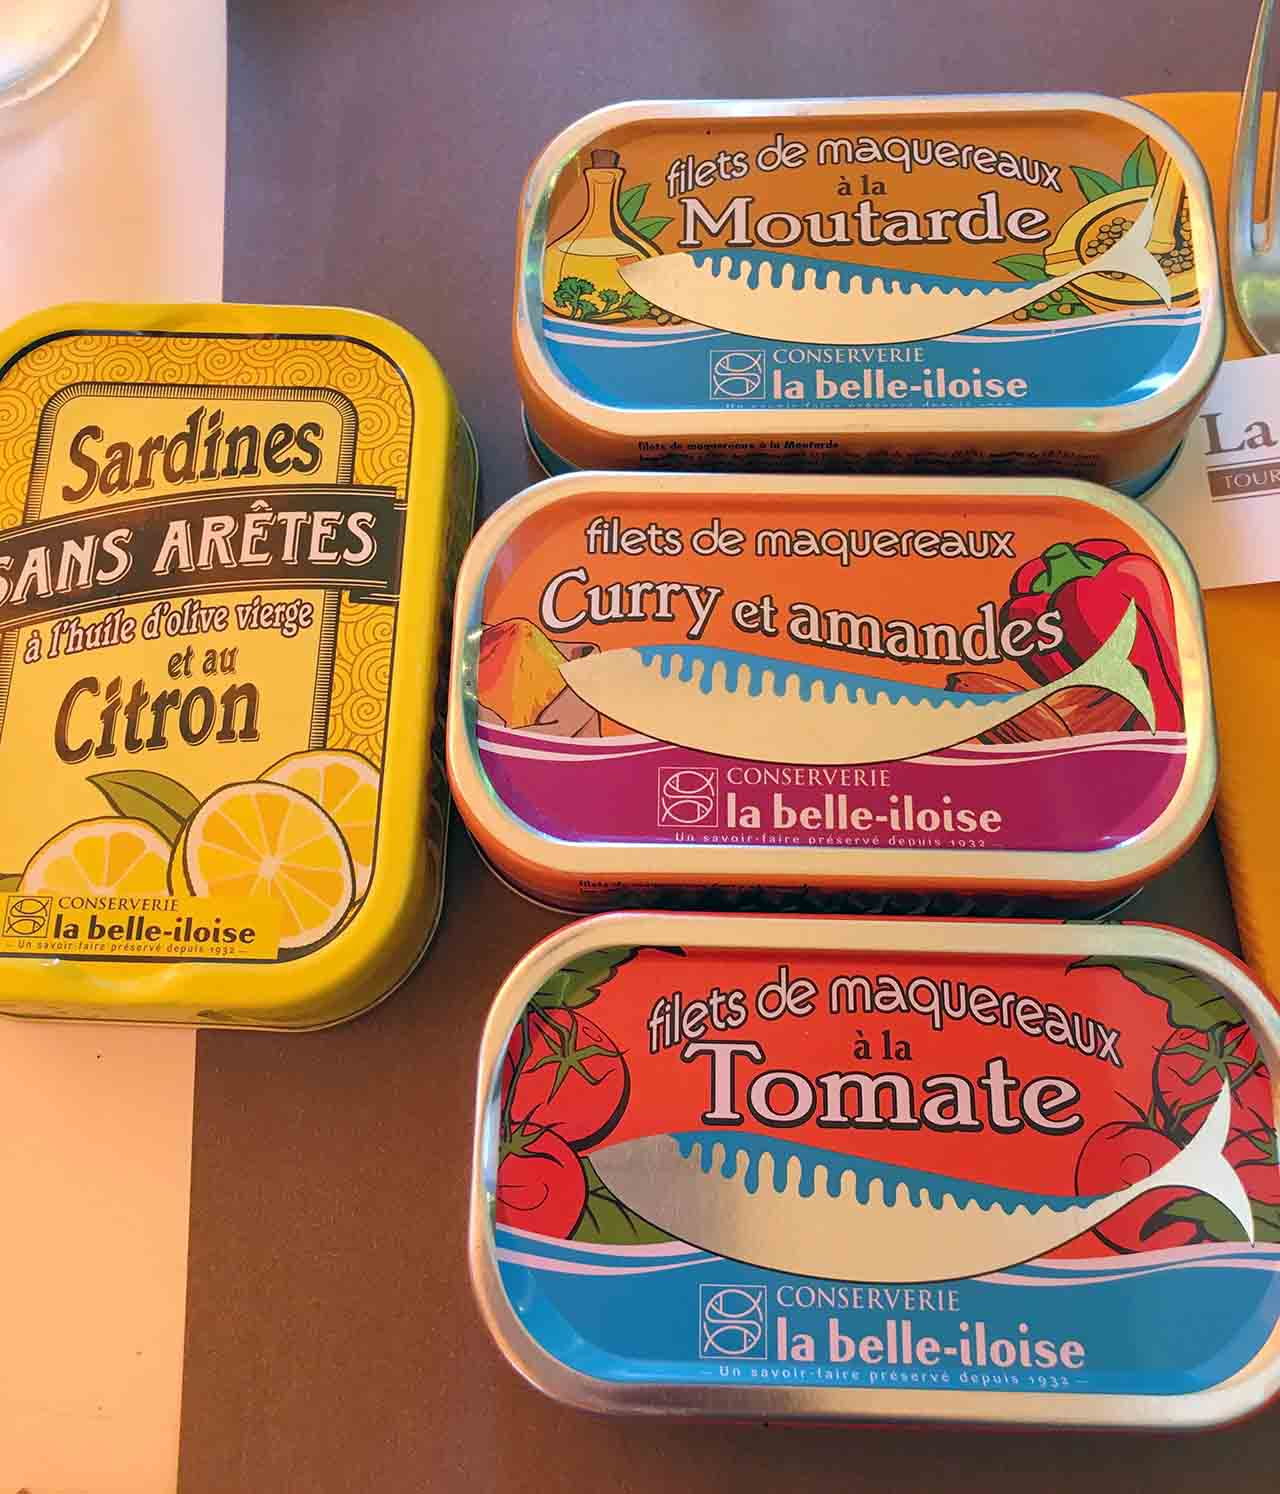 I have a deep love for canned fish. I love dipping bread into that oily sardine juice or squeezing lemon over a beautiful white anchovy. I was happy to bring these beauties home with me.